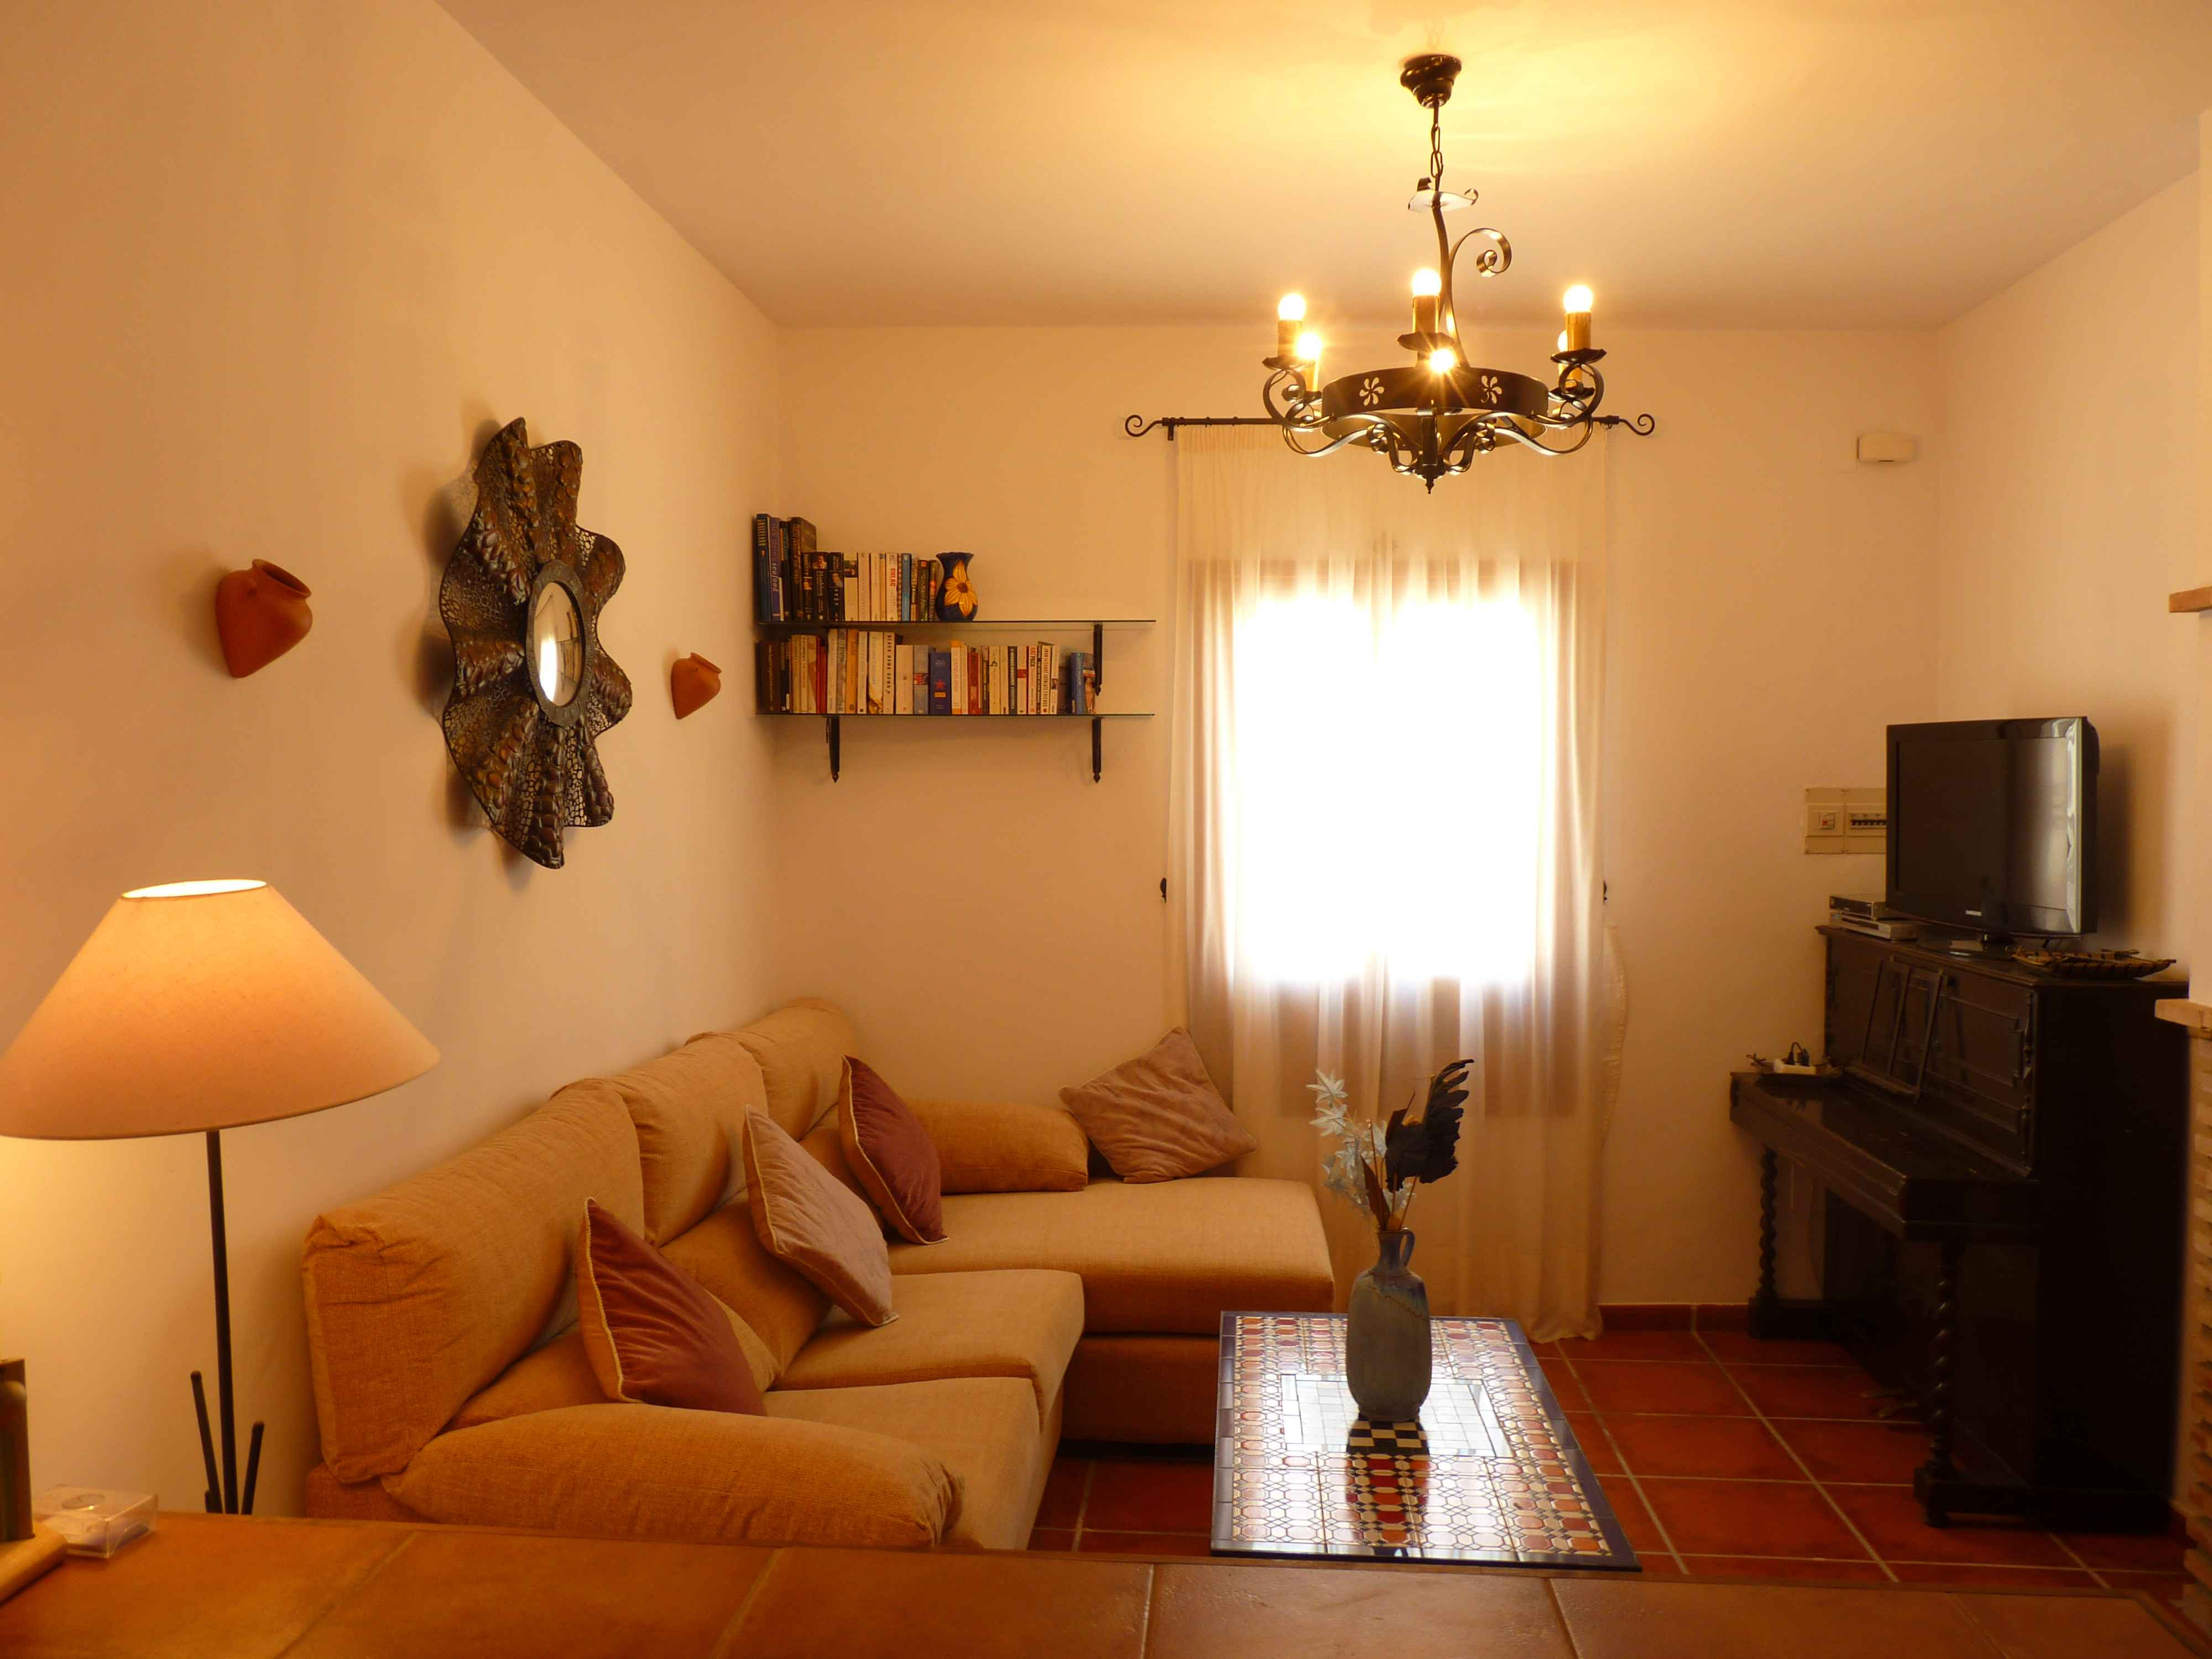 Wonderful Business Opportunity or Unique House To Live In. Antequera.properties/28/10.jpeg